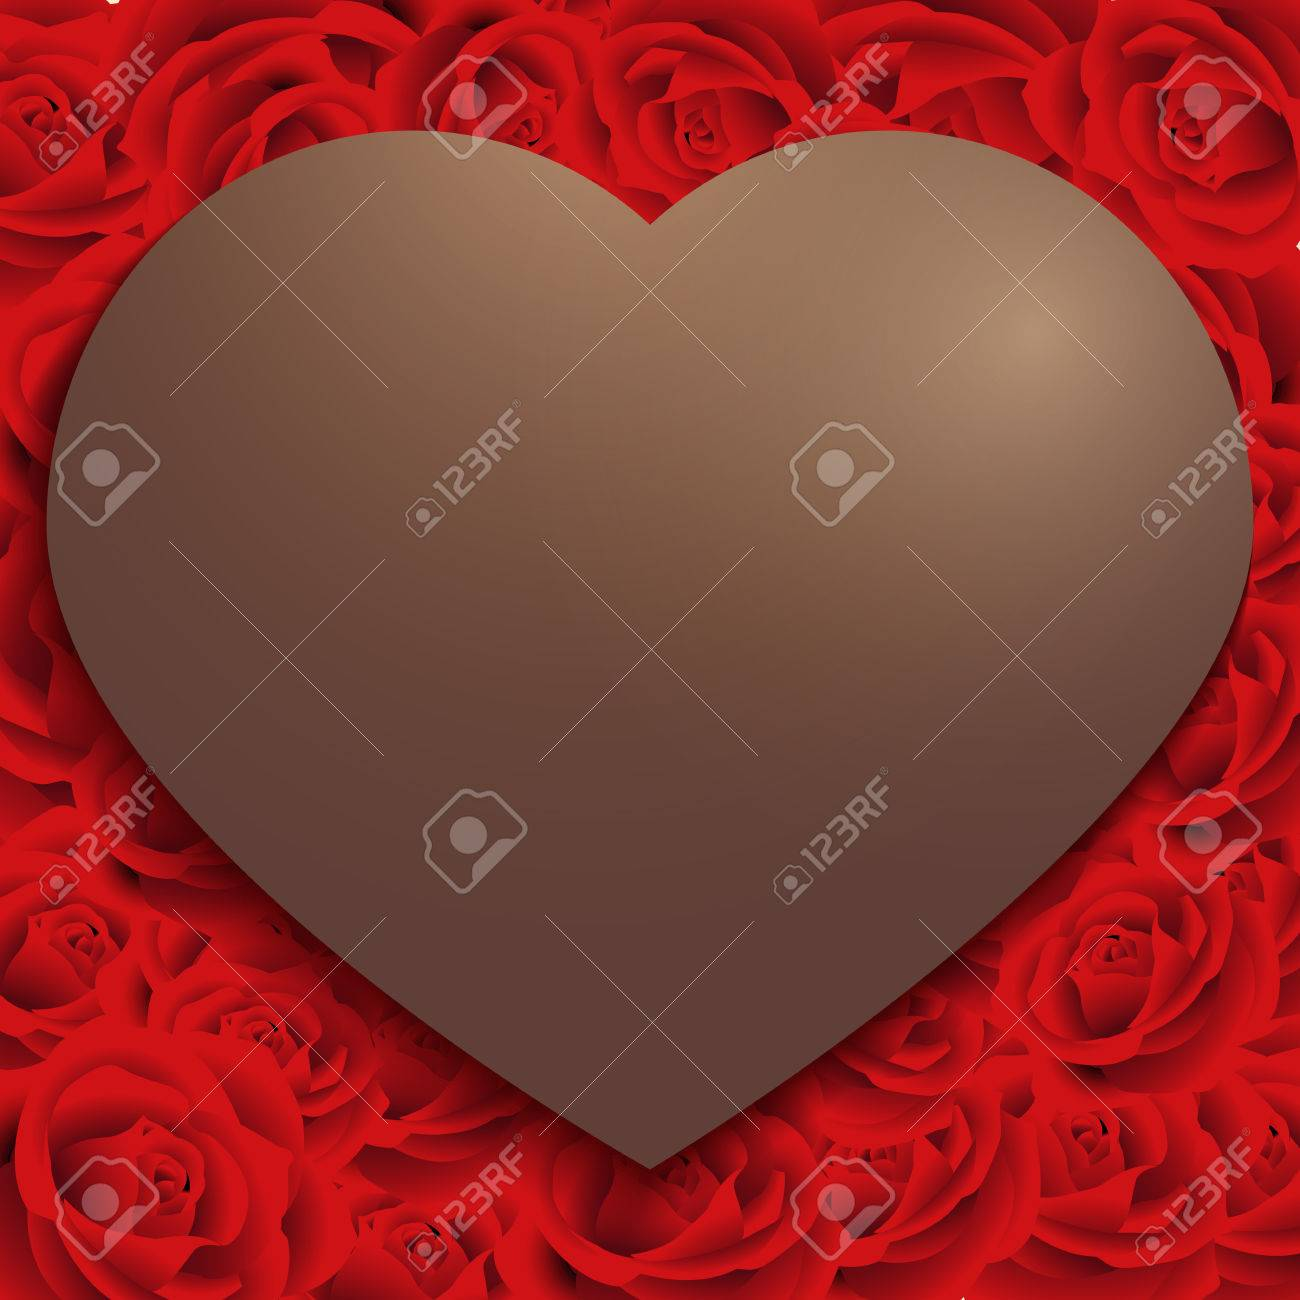 Happy Valentine Day Chocolate Heart Frame On Red Rose Pattern